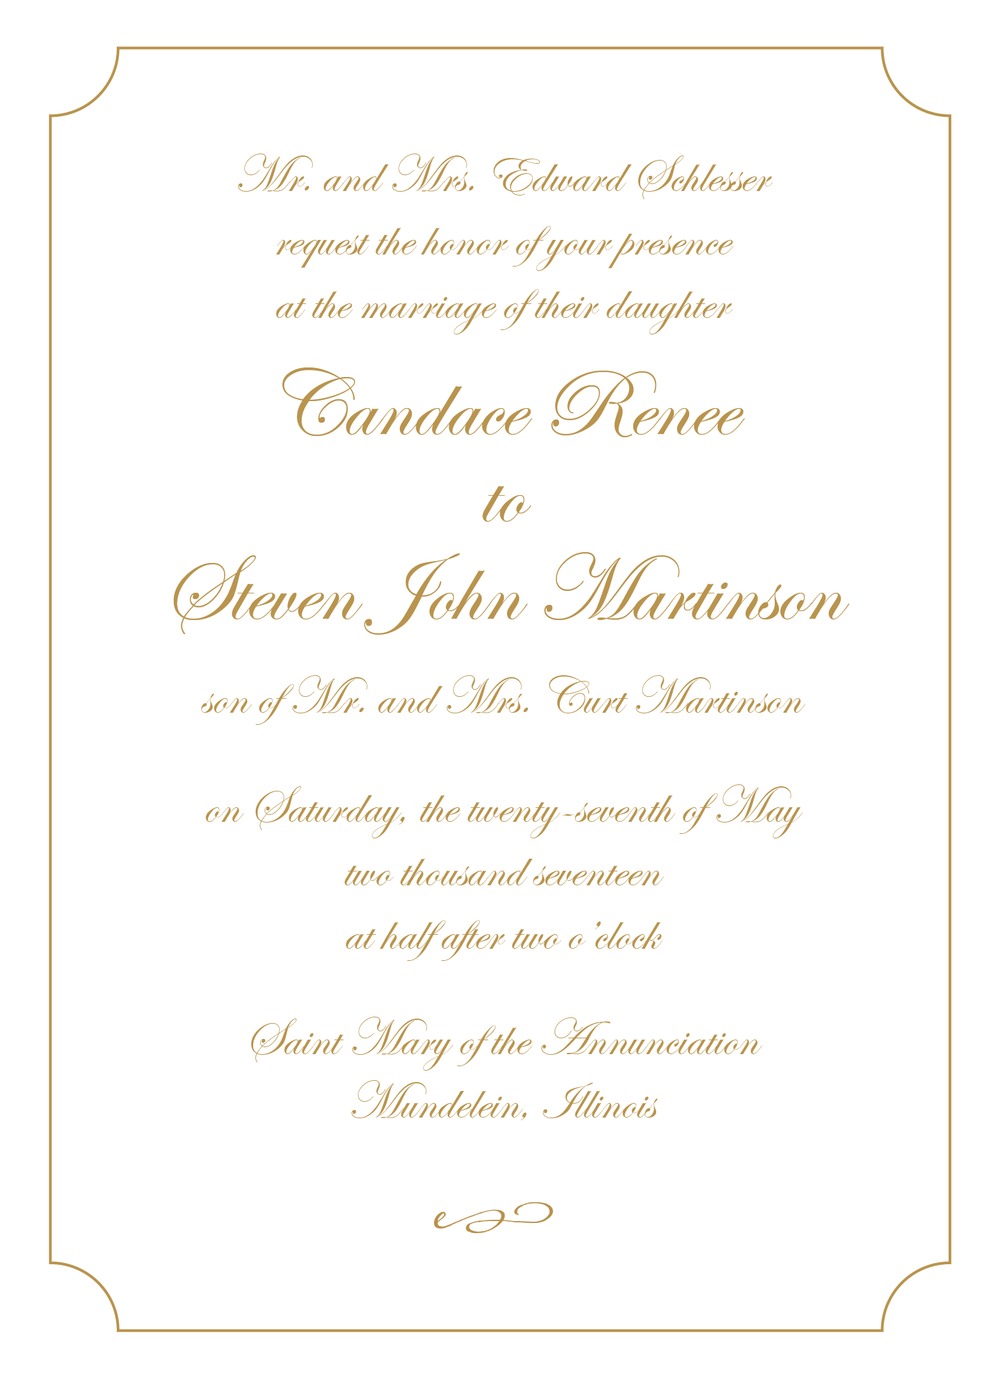 Candace_Invitation copy.png